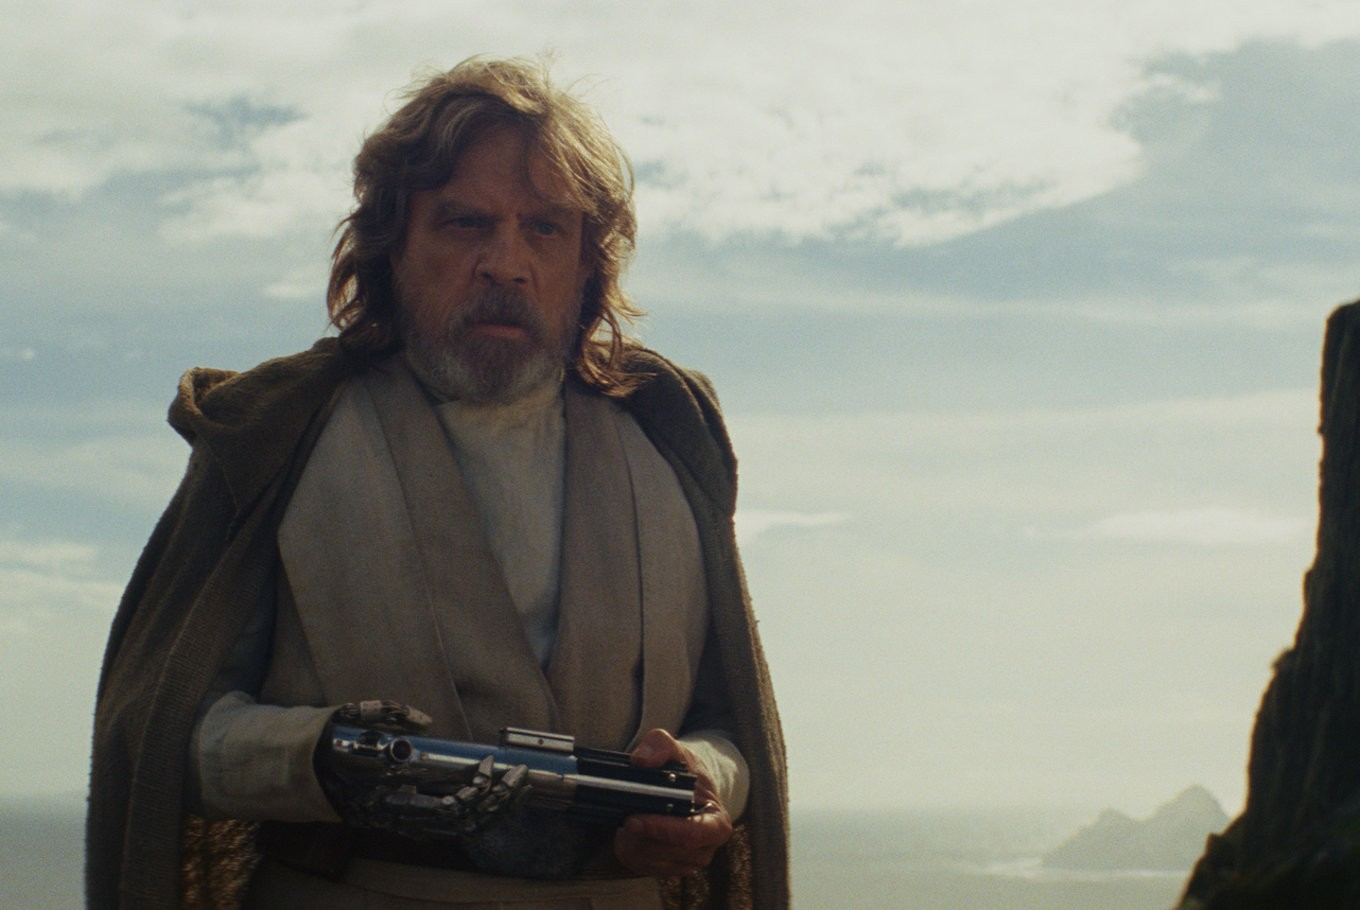 How 'Star Wars: The Last Jedi' helps explain conservatism